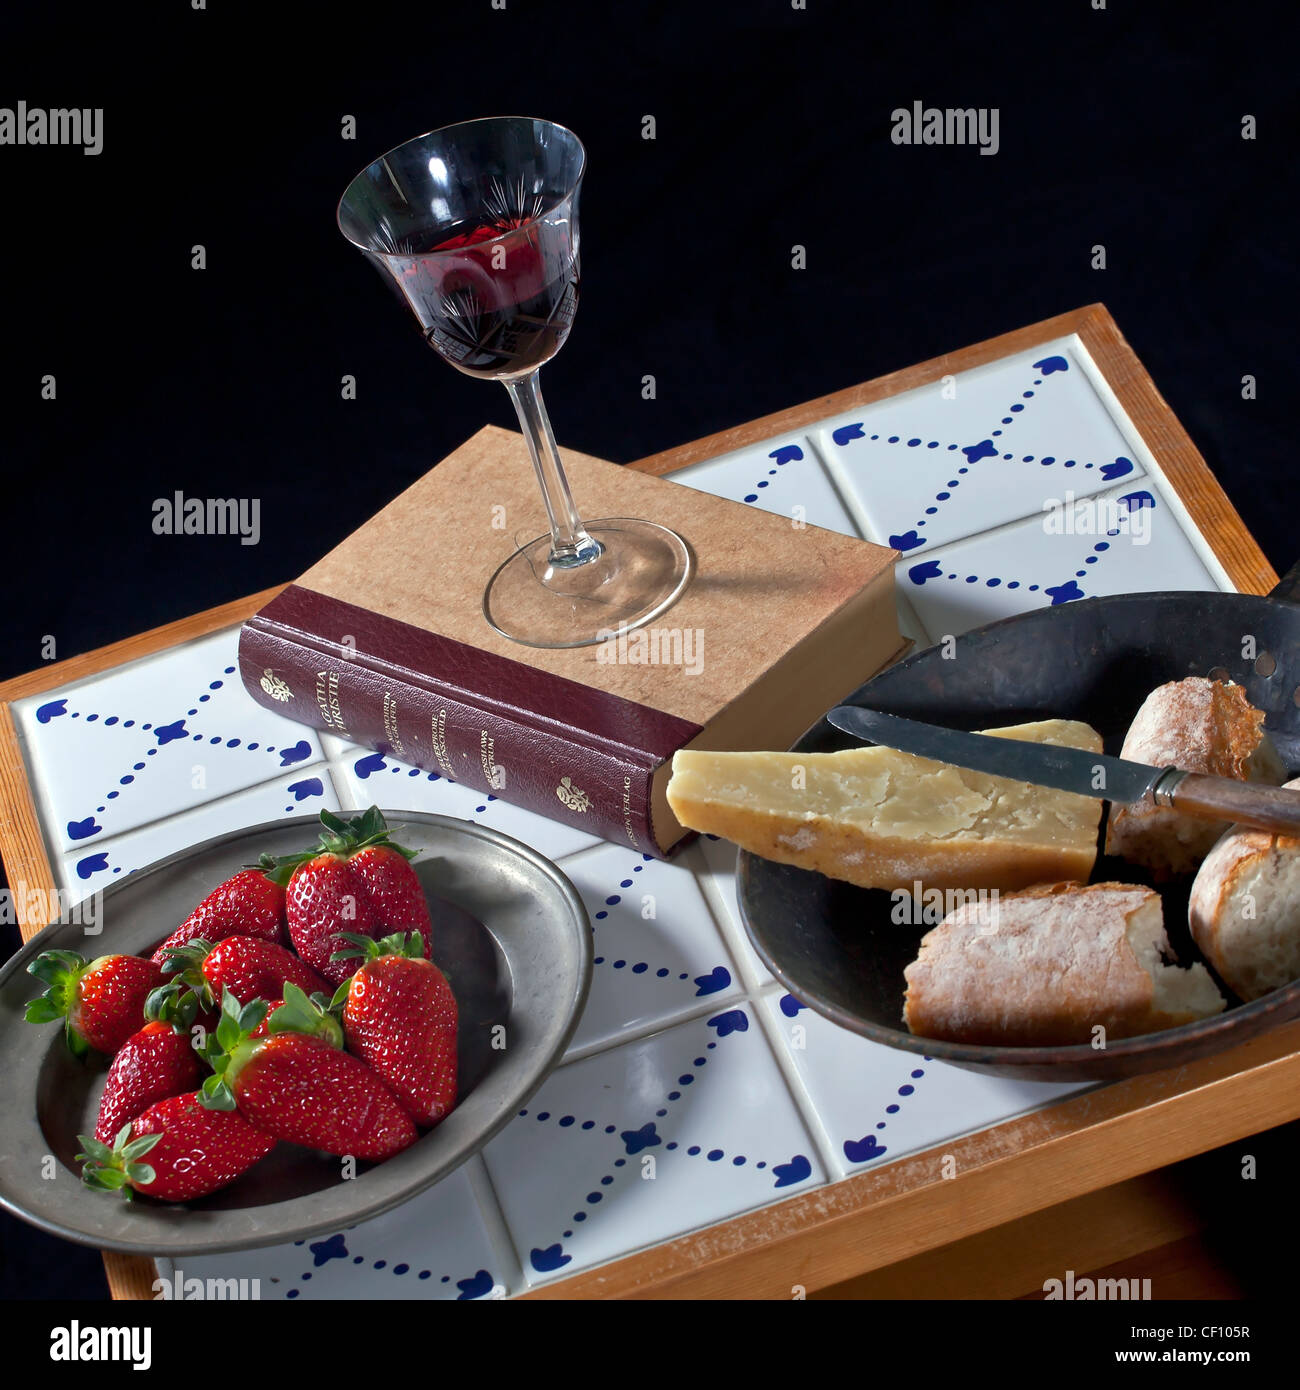 cozy snack: a book on a table made of old tiles with red wine, strawberries, cheese and bread - Stock Image